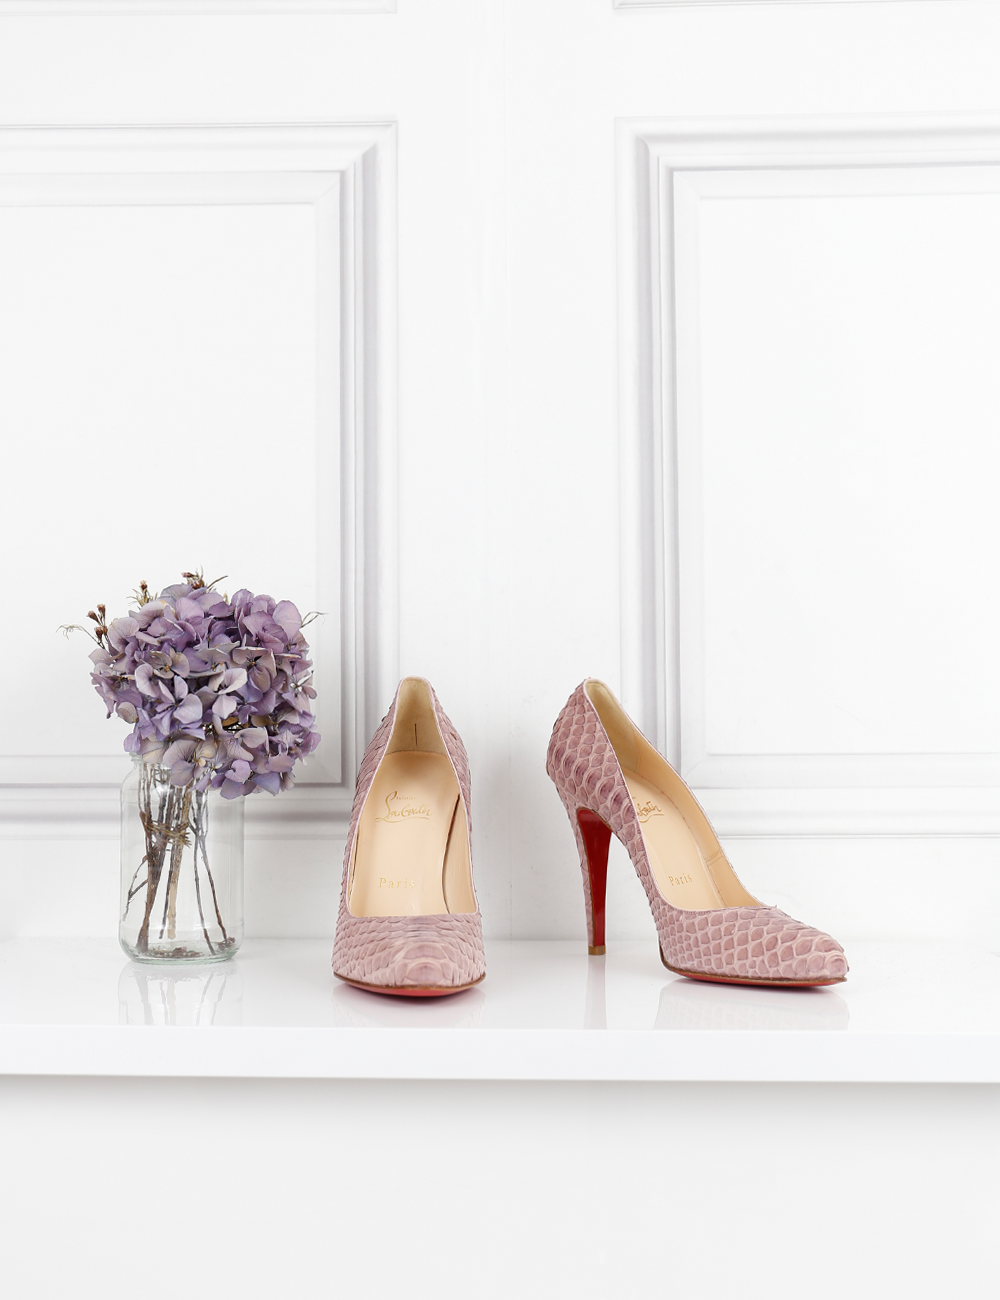 LOUBOUTIN SHOES Decollete 868 rosette python pumps 4Uk- My Wardrobe Mistakes